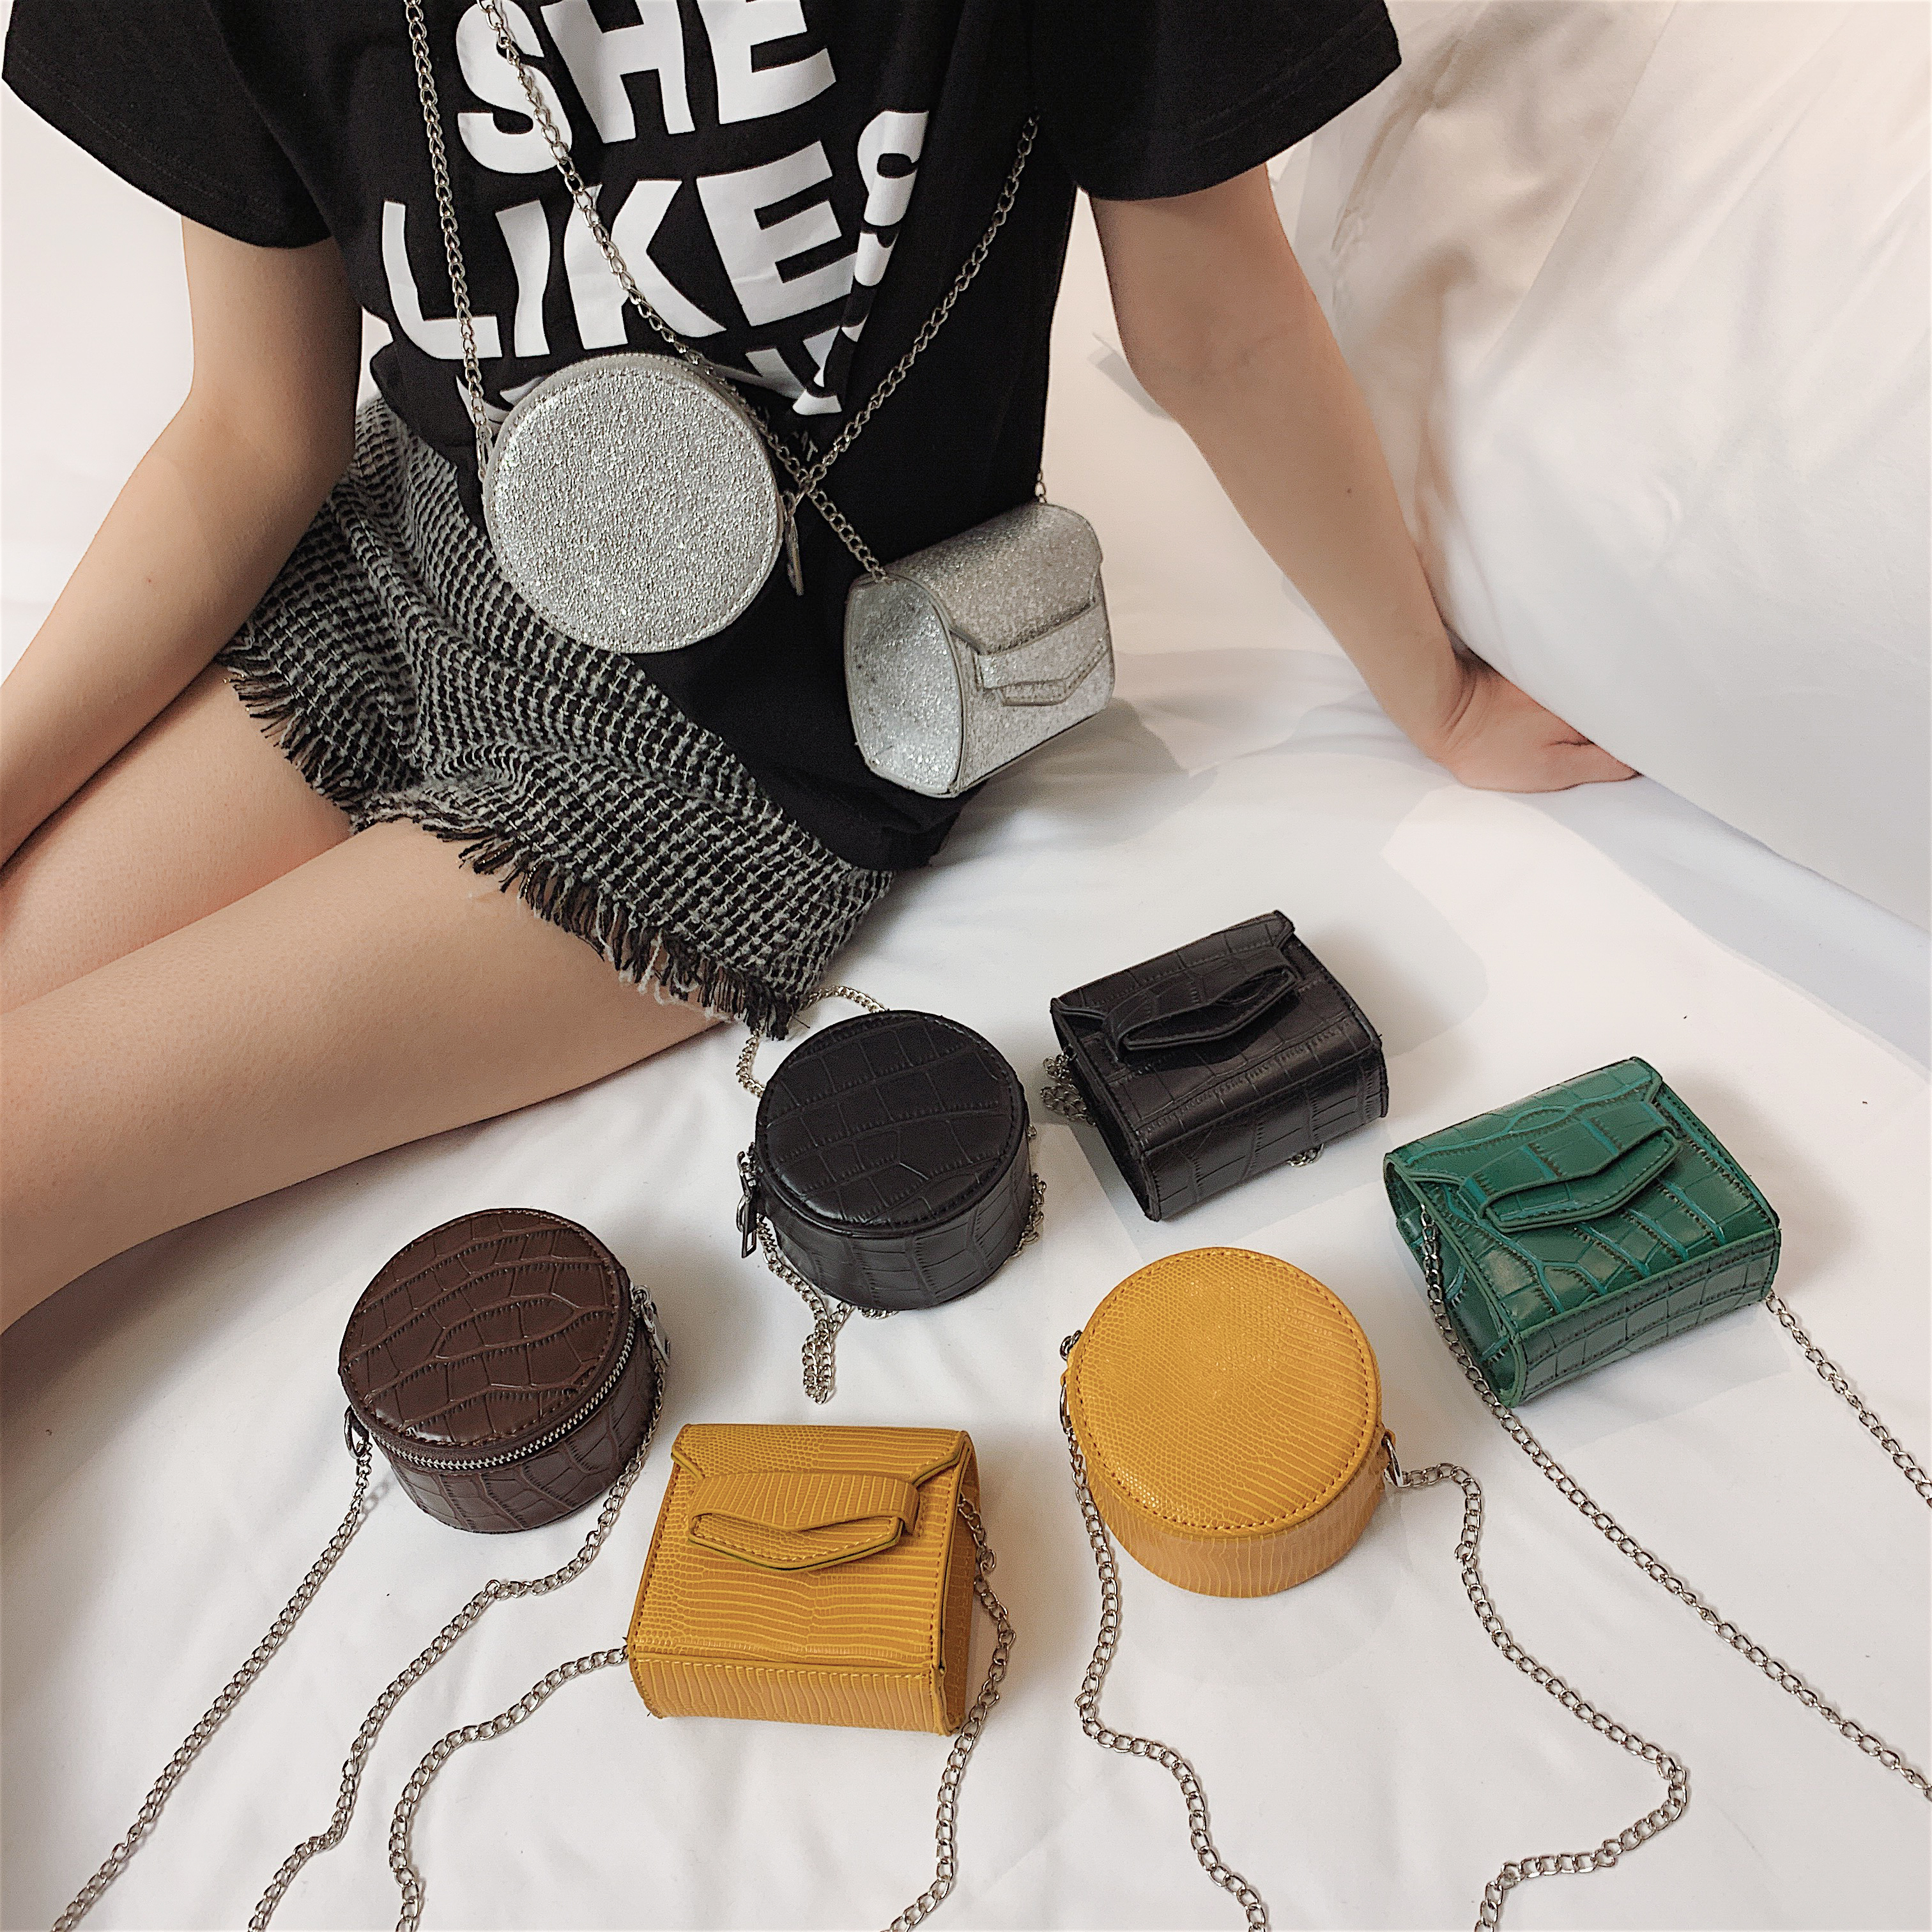 Mini Cute PU Leather Crossbody Bags For Women 2020 Round  Square Messenger Shoulder Bag Ladies Phone Purses And Handbags